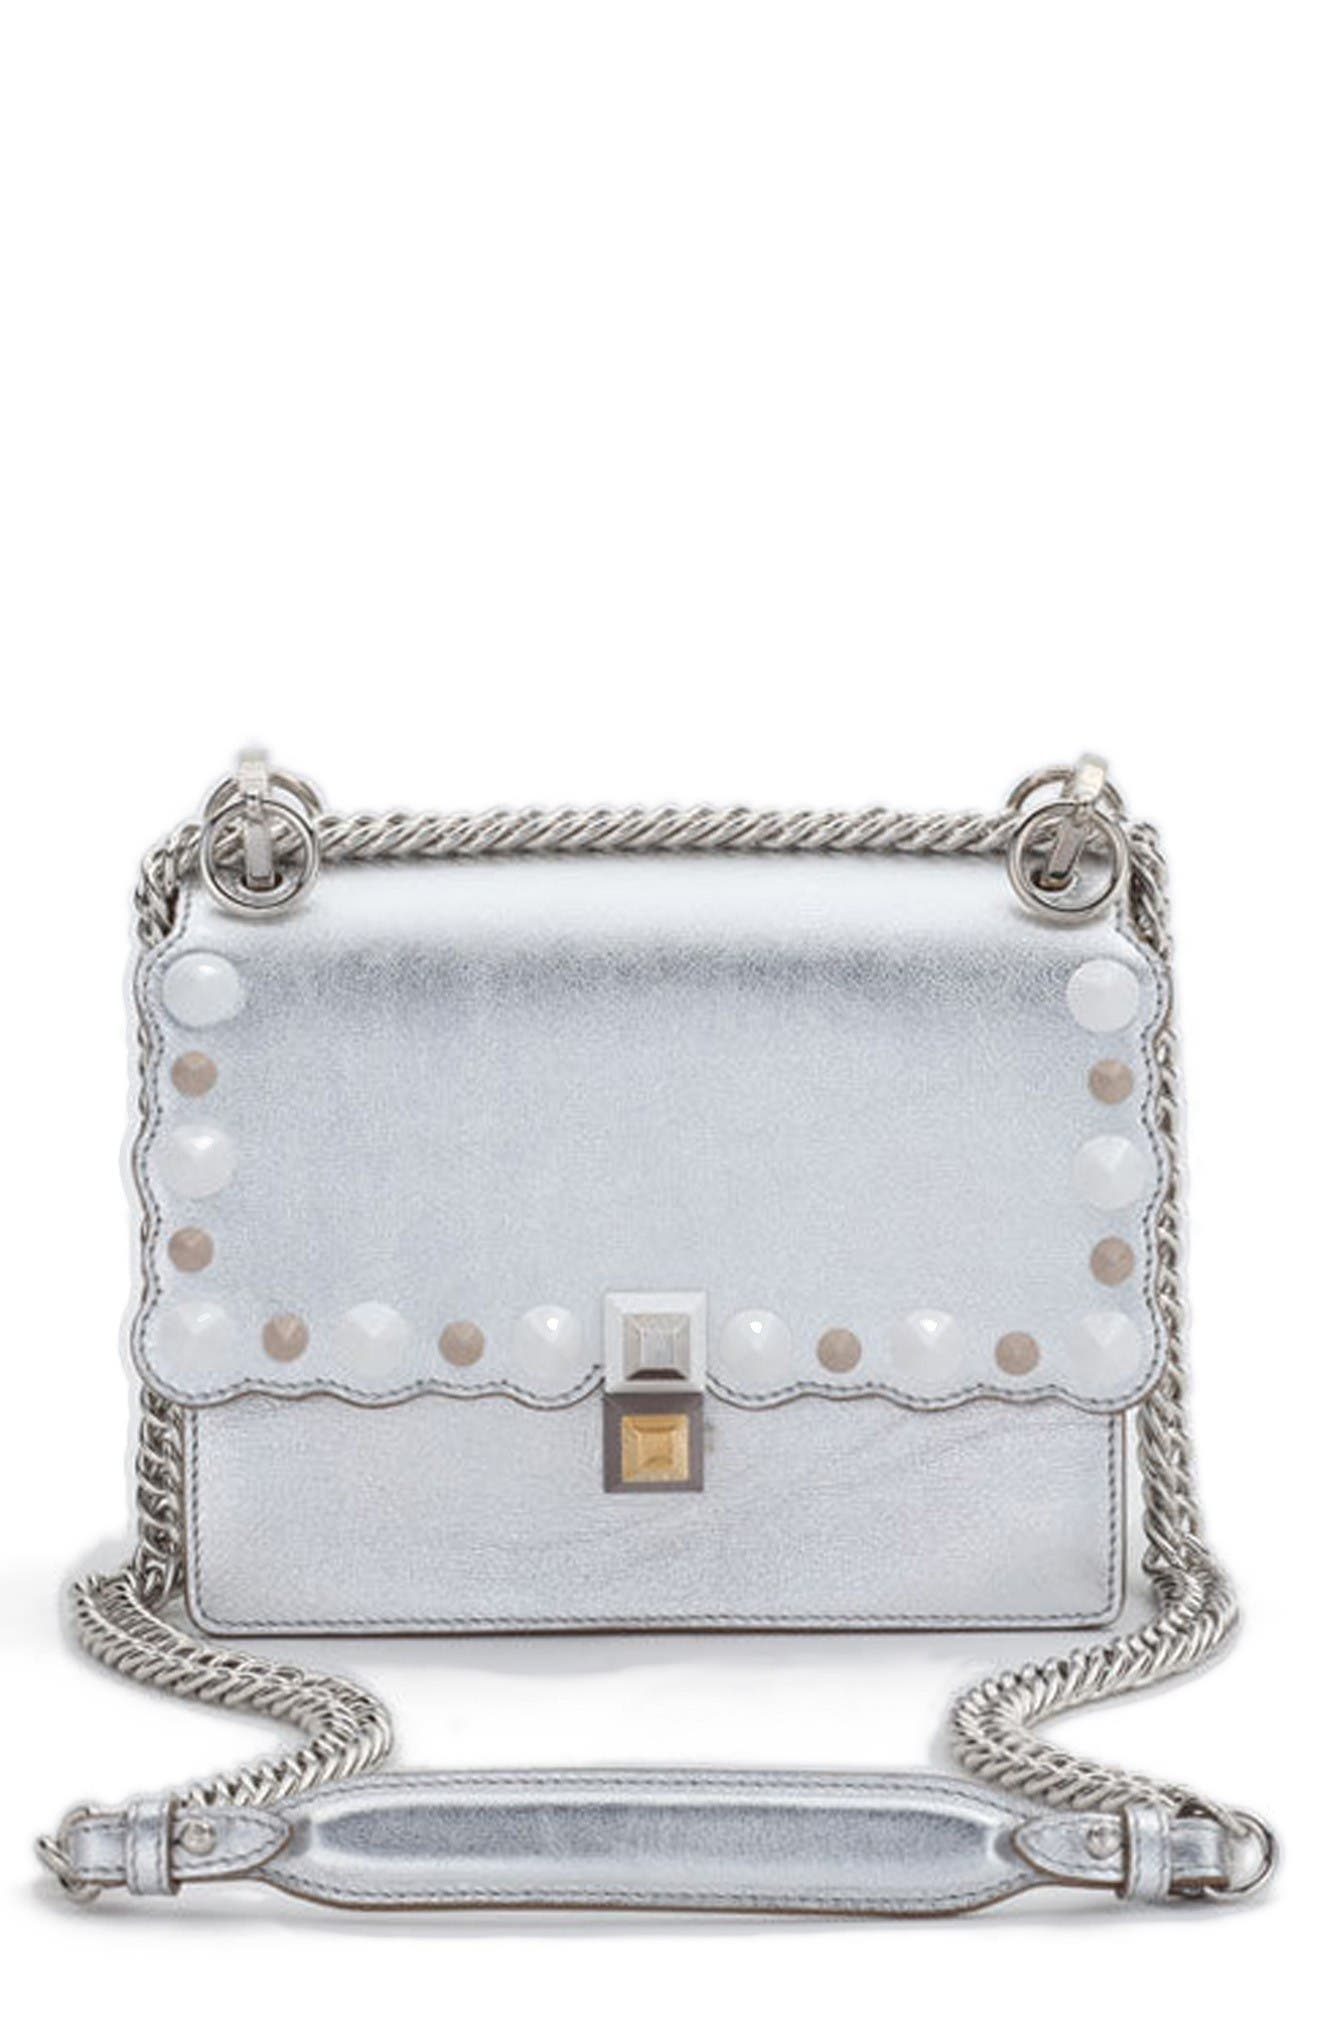 FENDI Small Kan I Metallic Leather Shoulder Bag